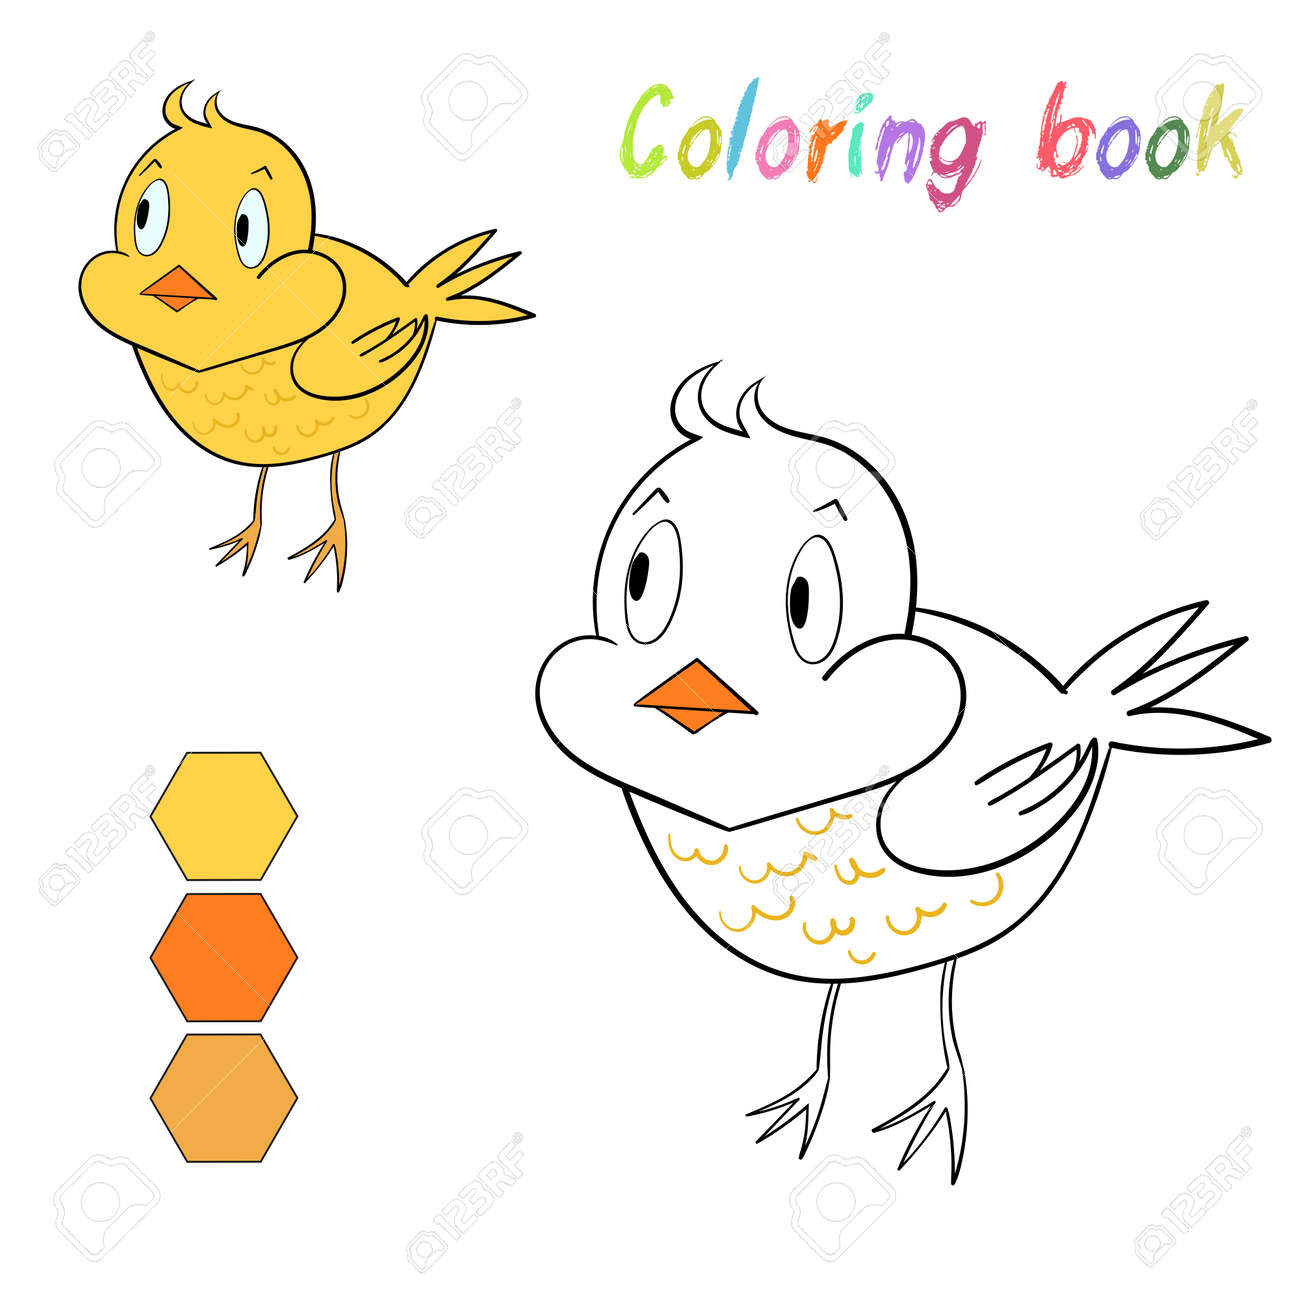 Coloring Book Chicken Kids Layout For Game Cartoon Hand Drawn Doodle Vector Illustration Stock